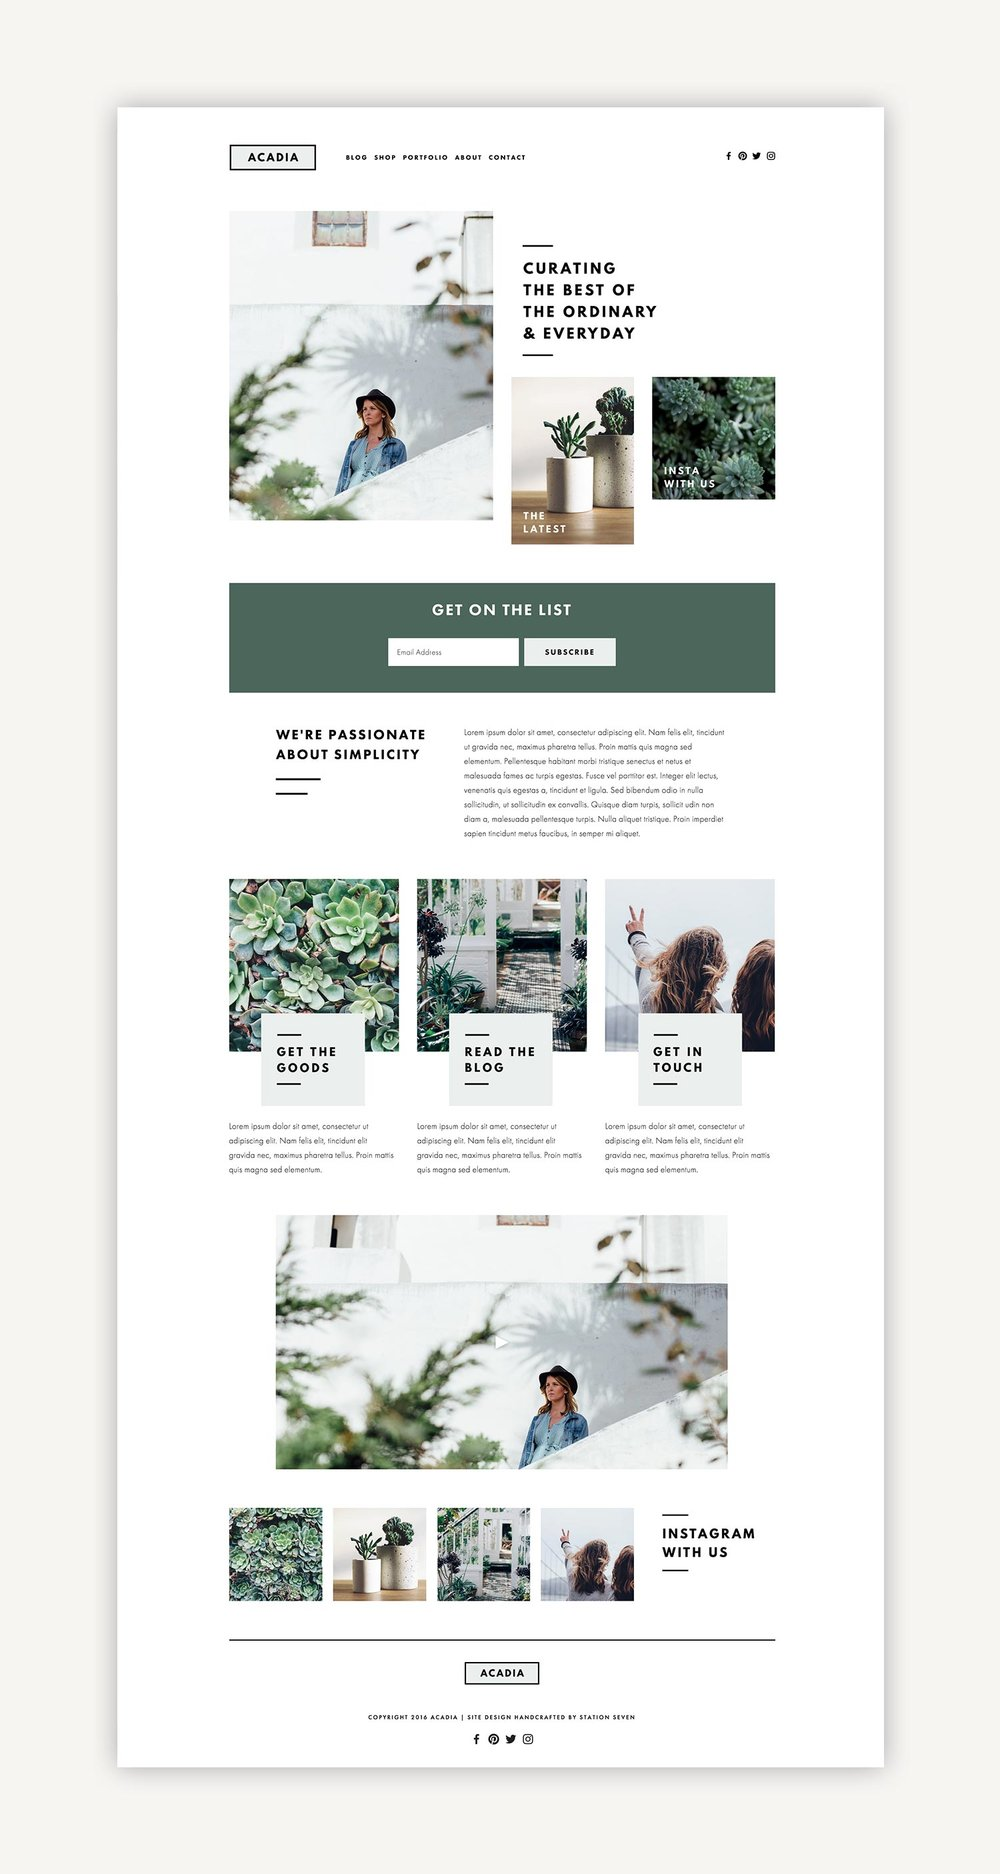 acadia squarespace kit station seven squarespace templates wordpress themes and free resources for creative entrepreneurs